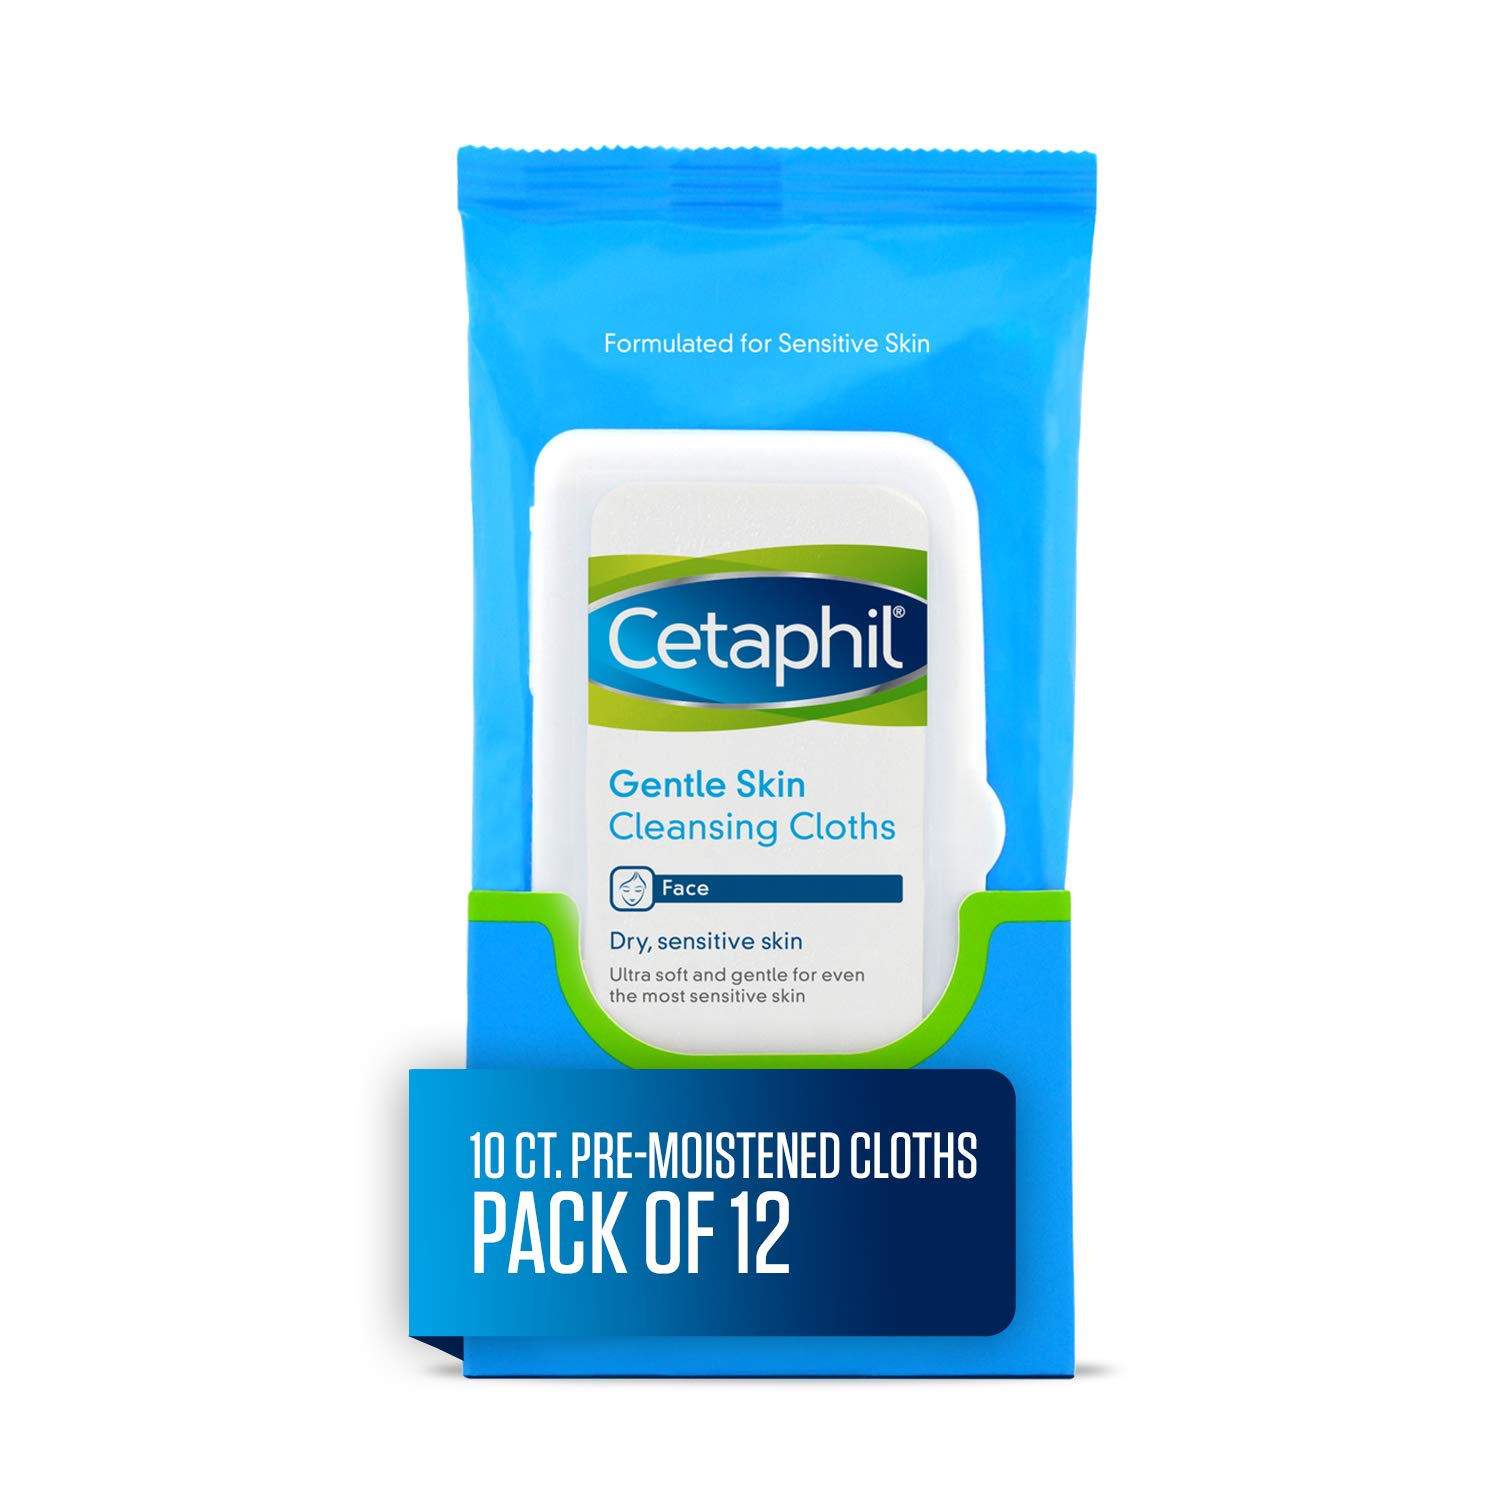 Cetaphil Gentle Skin Cleansing Cloths for Dry, Sensitive Skin, Face Cleansing Wipes, 10 Count (Pack of 12)